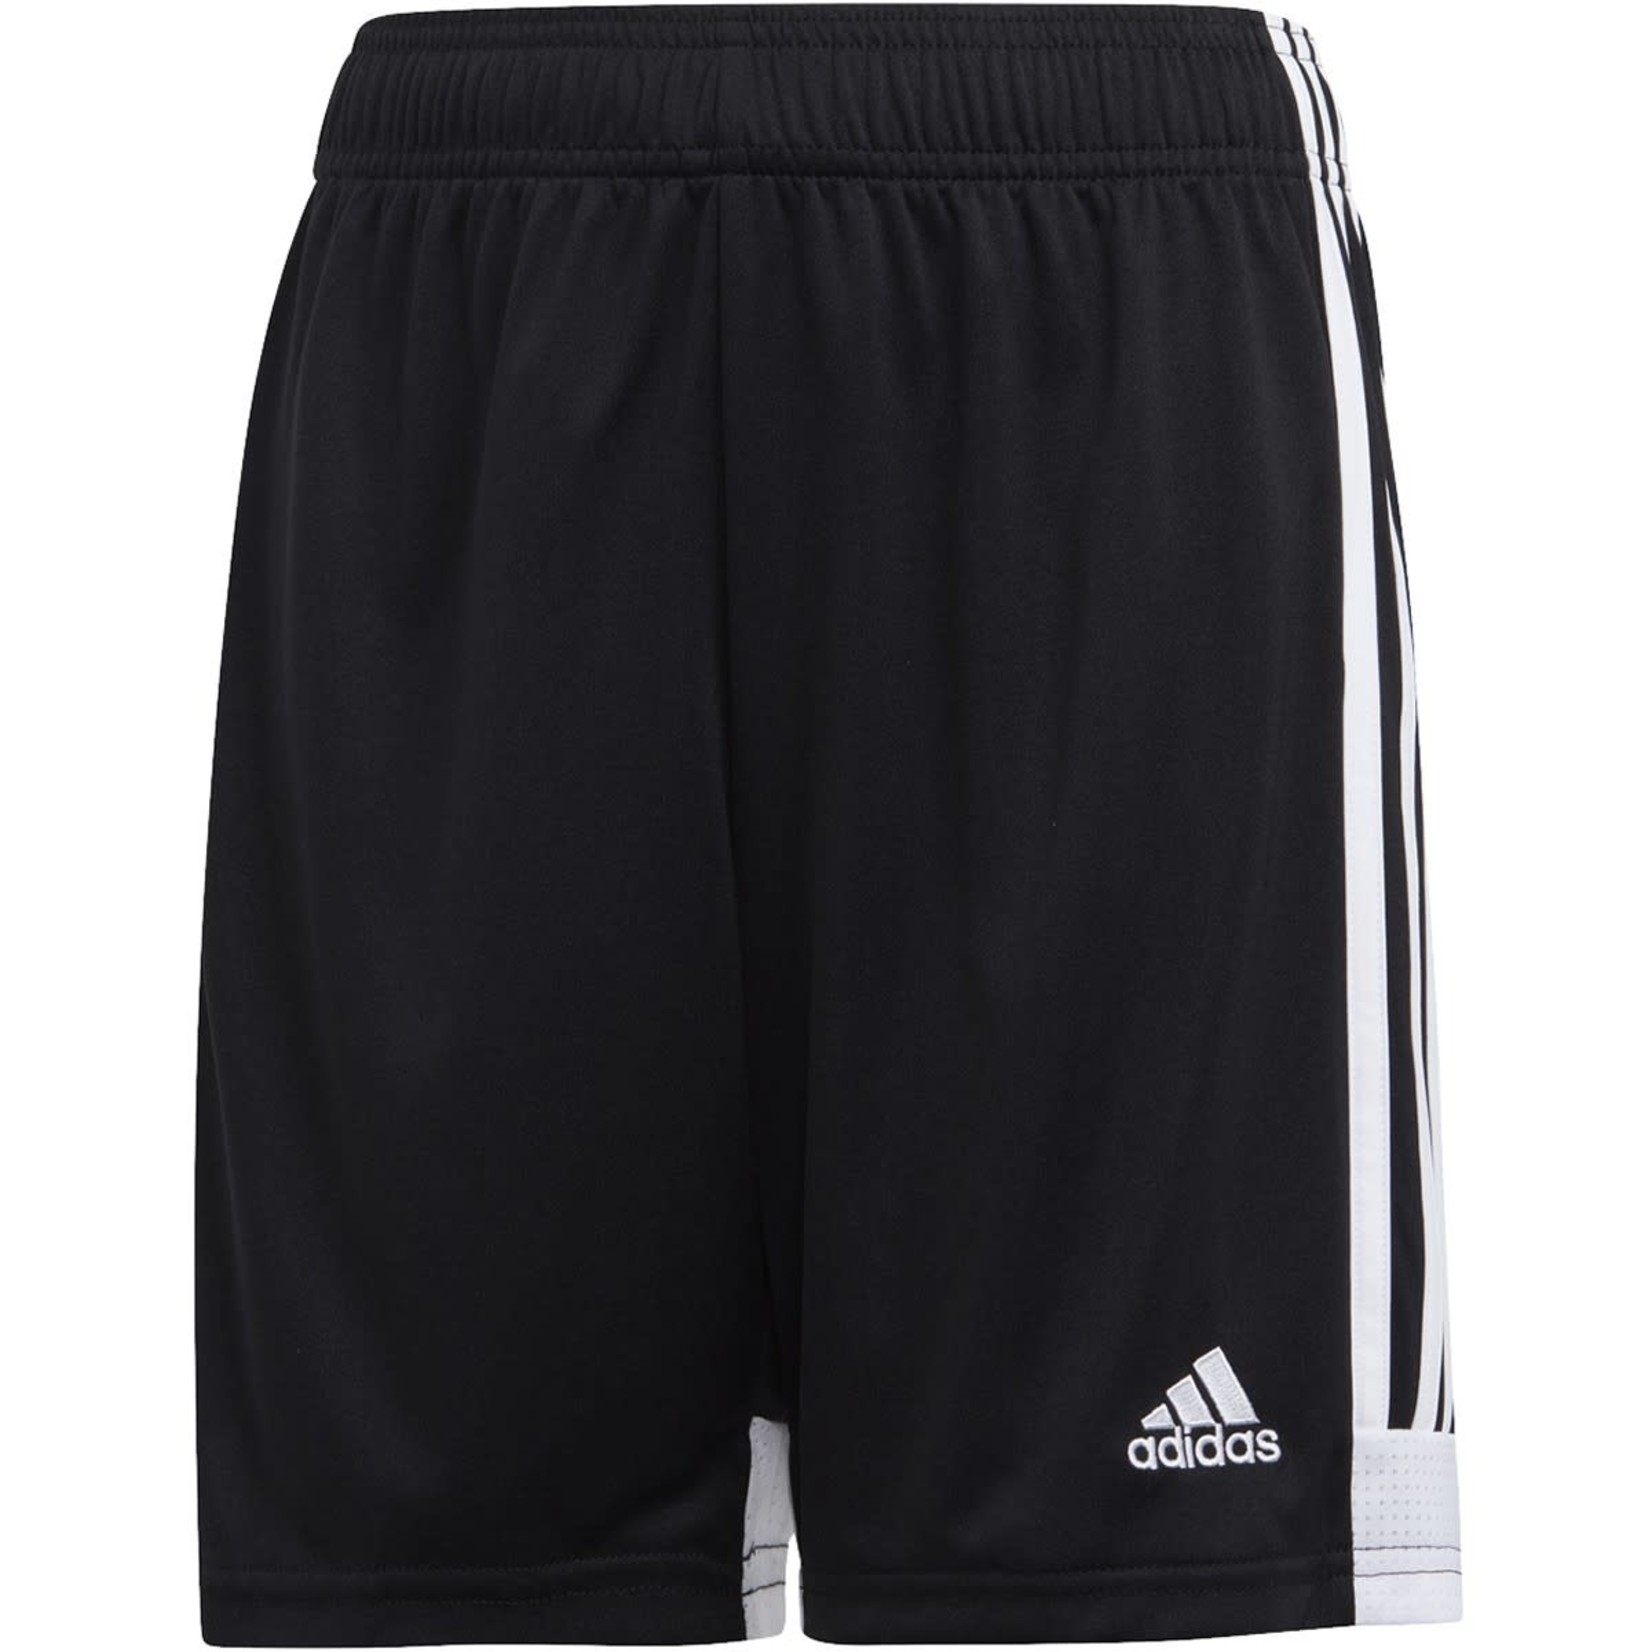 ADIDAS TASTIGO 19 SHORT YOUTH